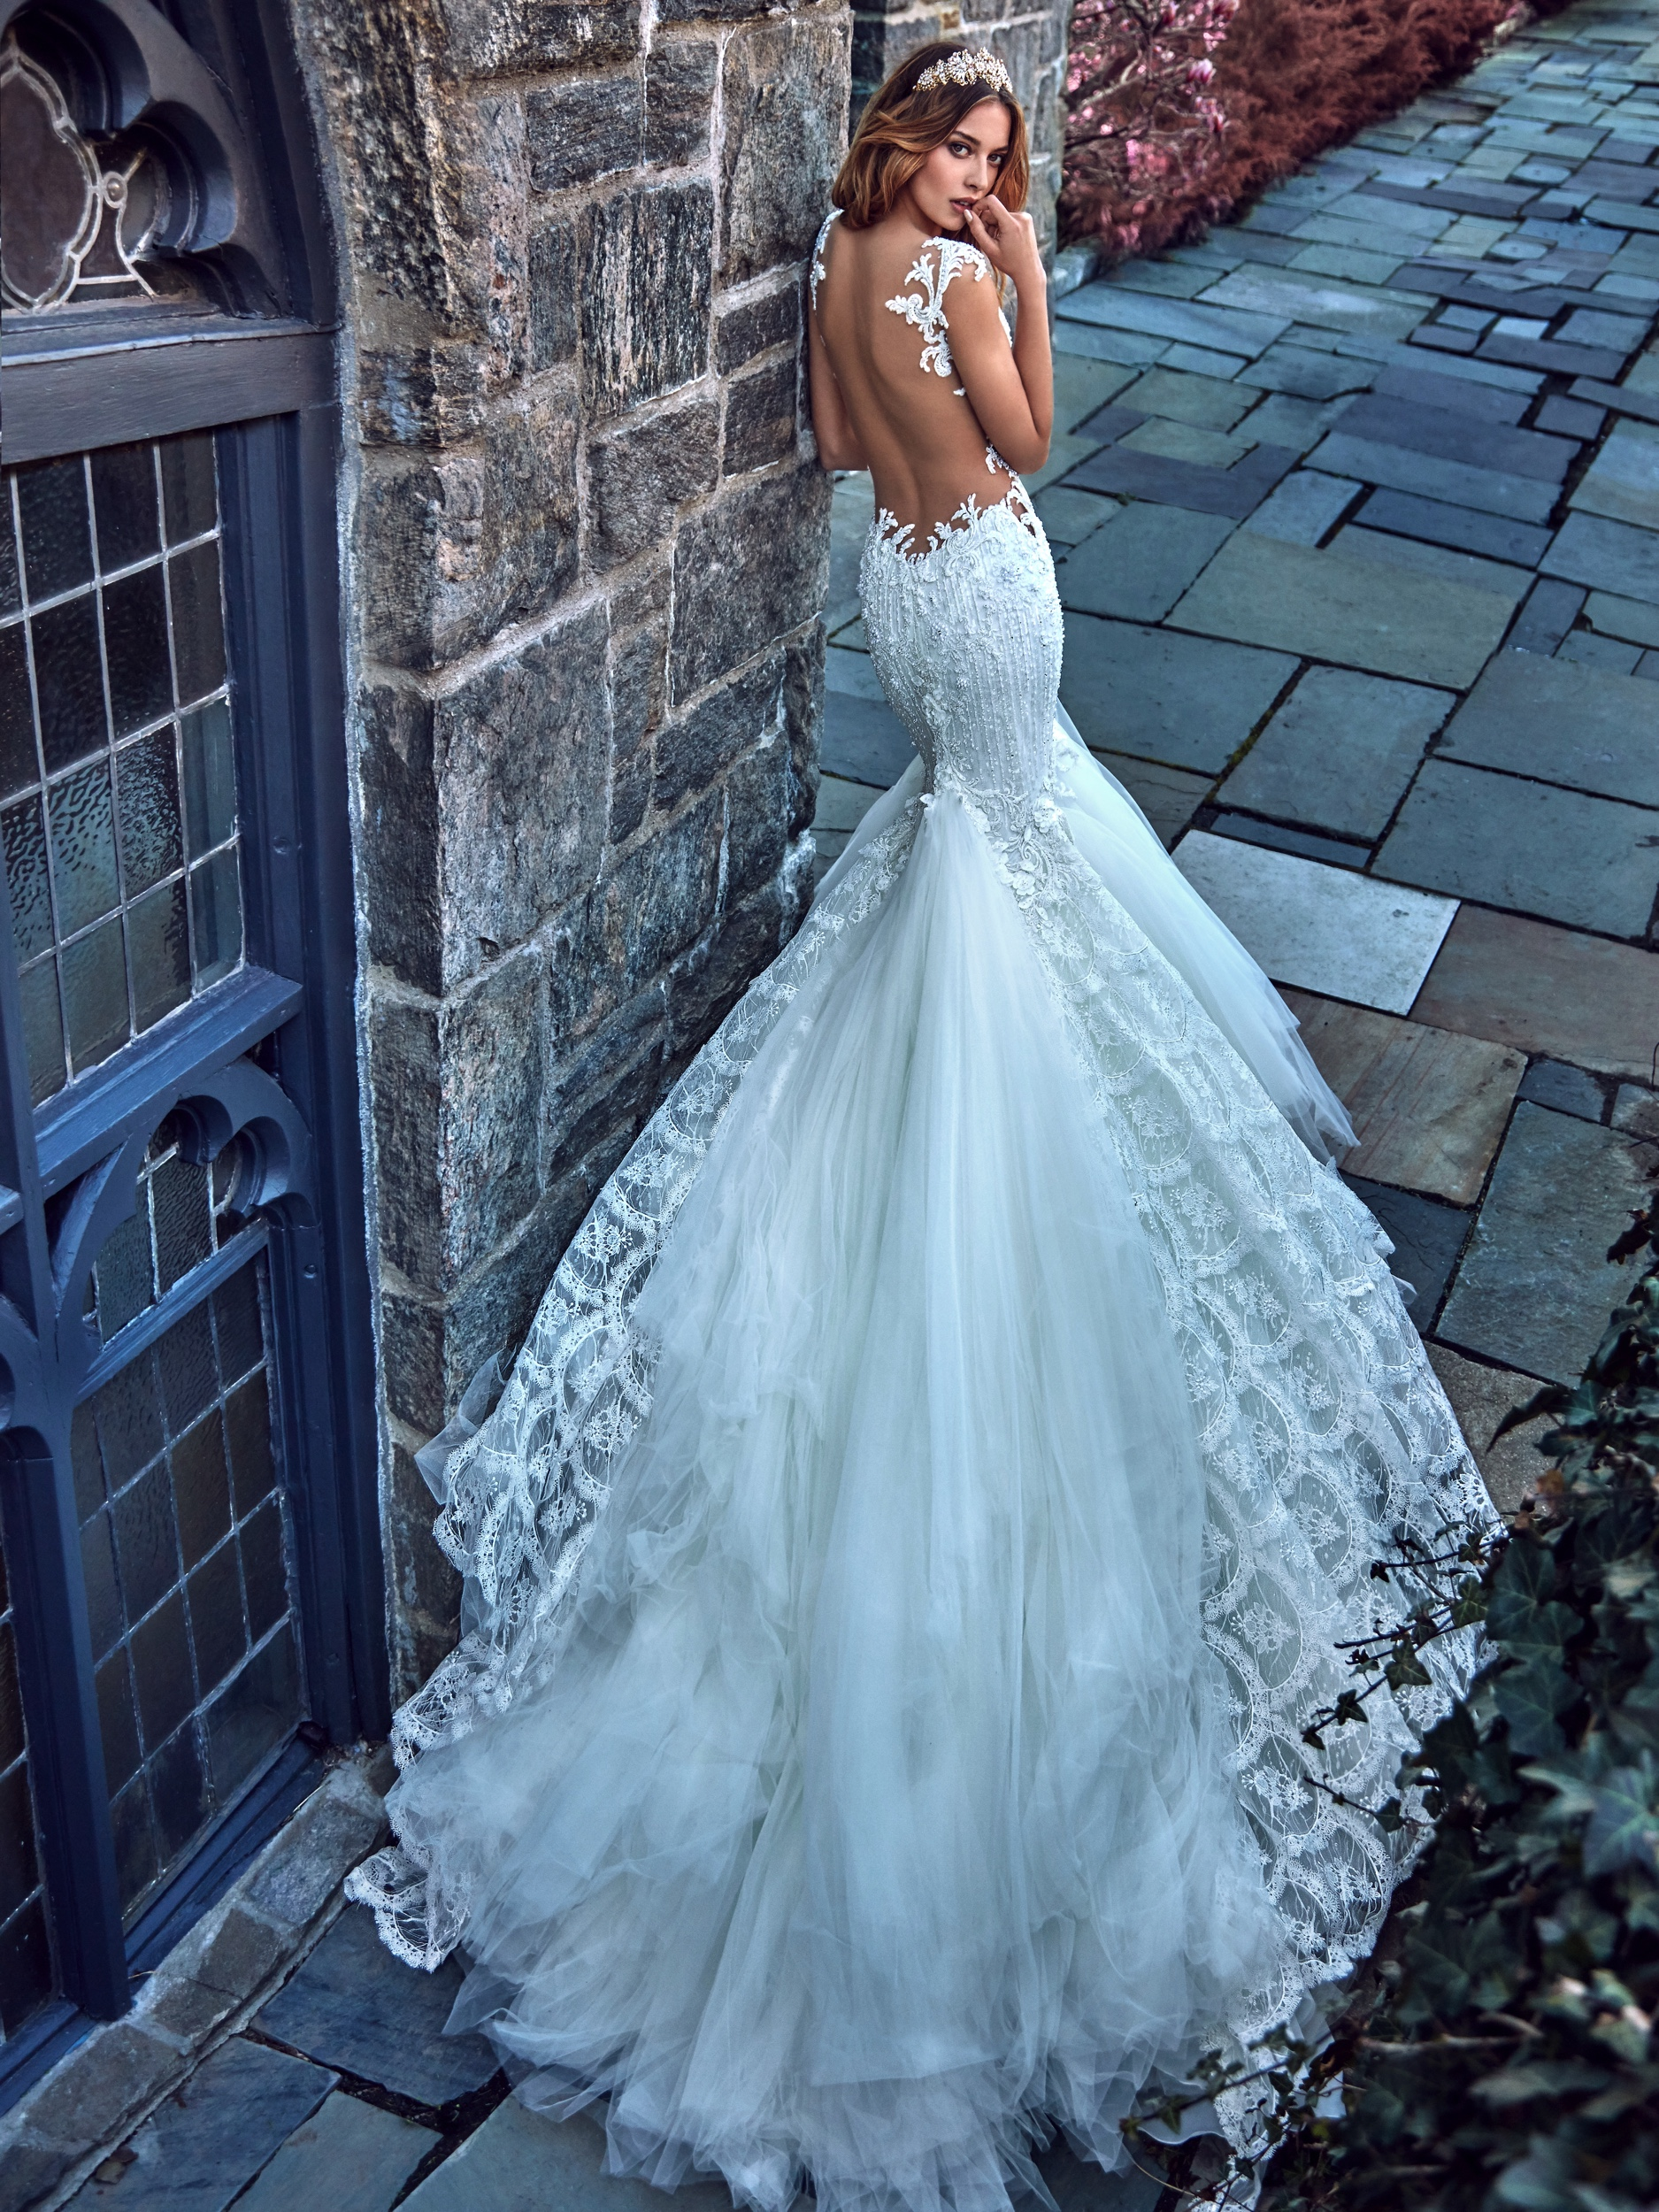 A wedding dress with luxurious train